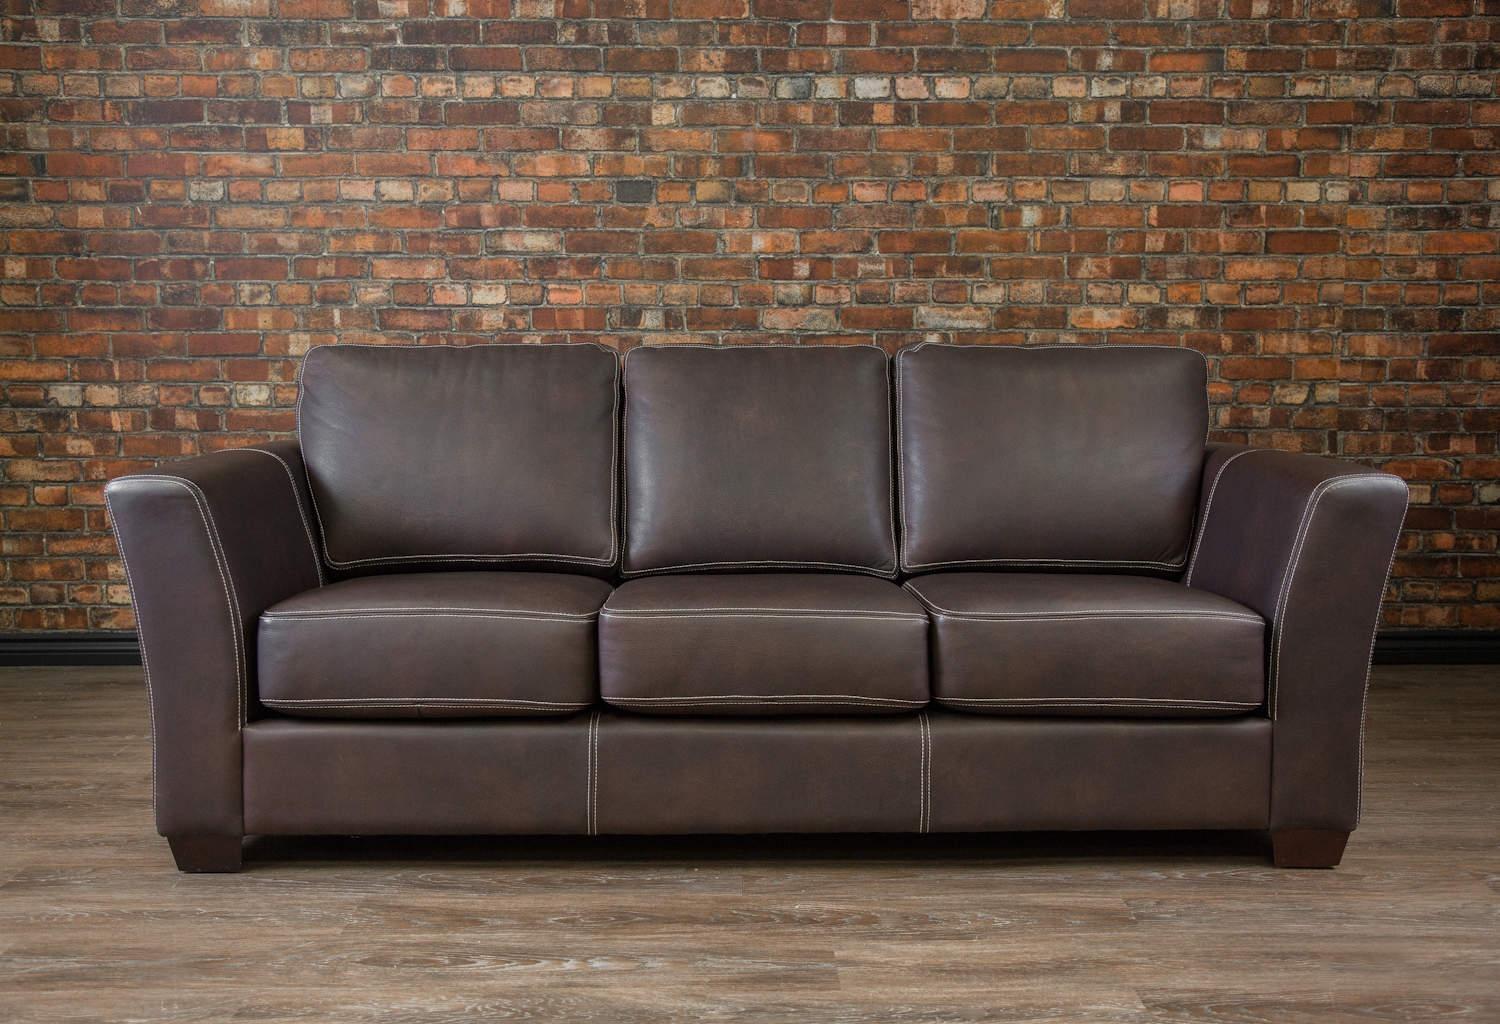 The Aspen Collection (Sofa) | Canada's Boss Leather Sofas And In Aspen Leather Sofas (Image 20 of 20)